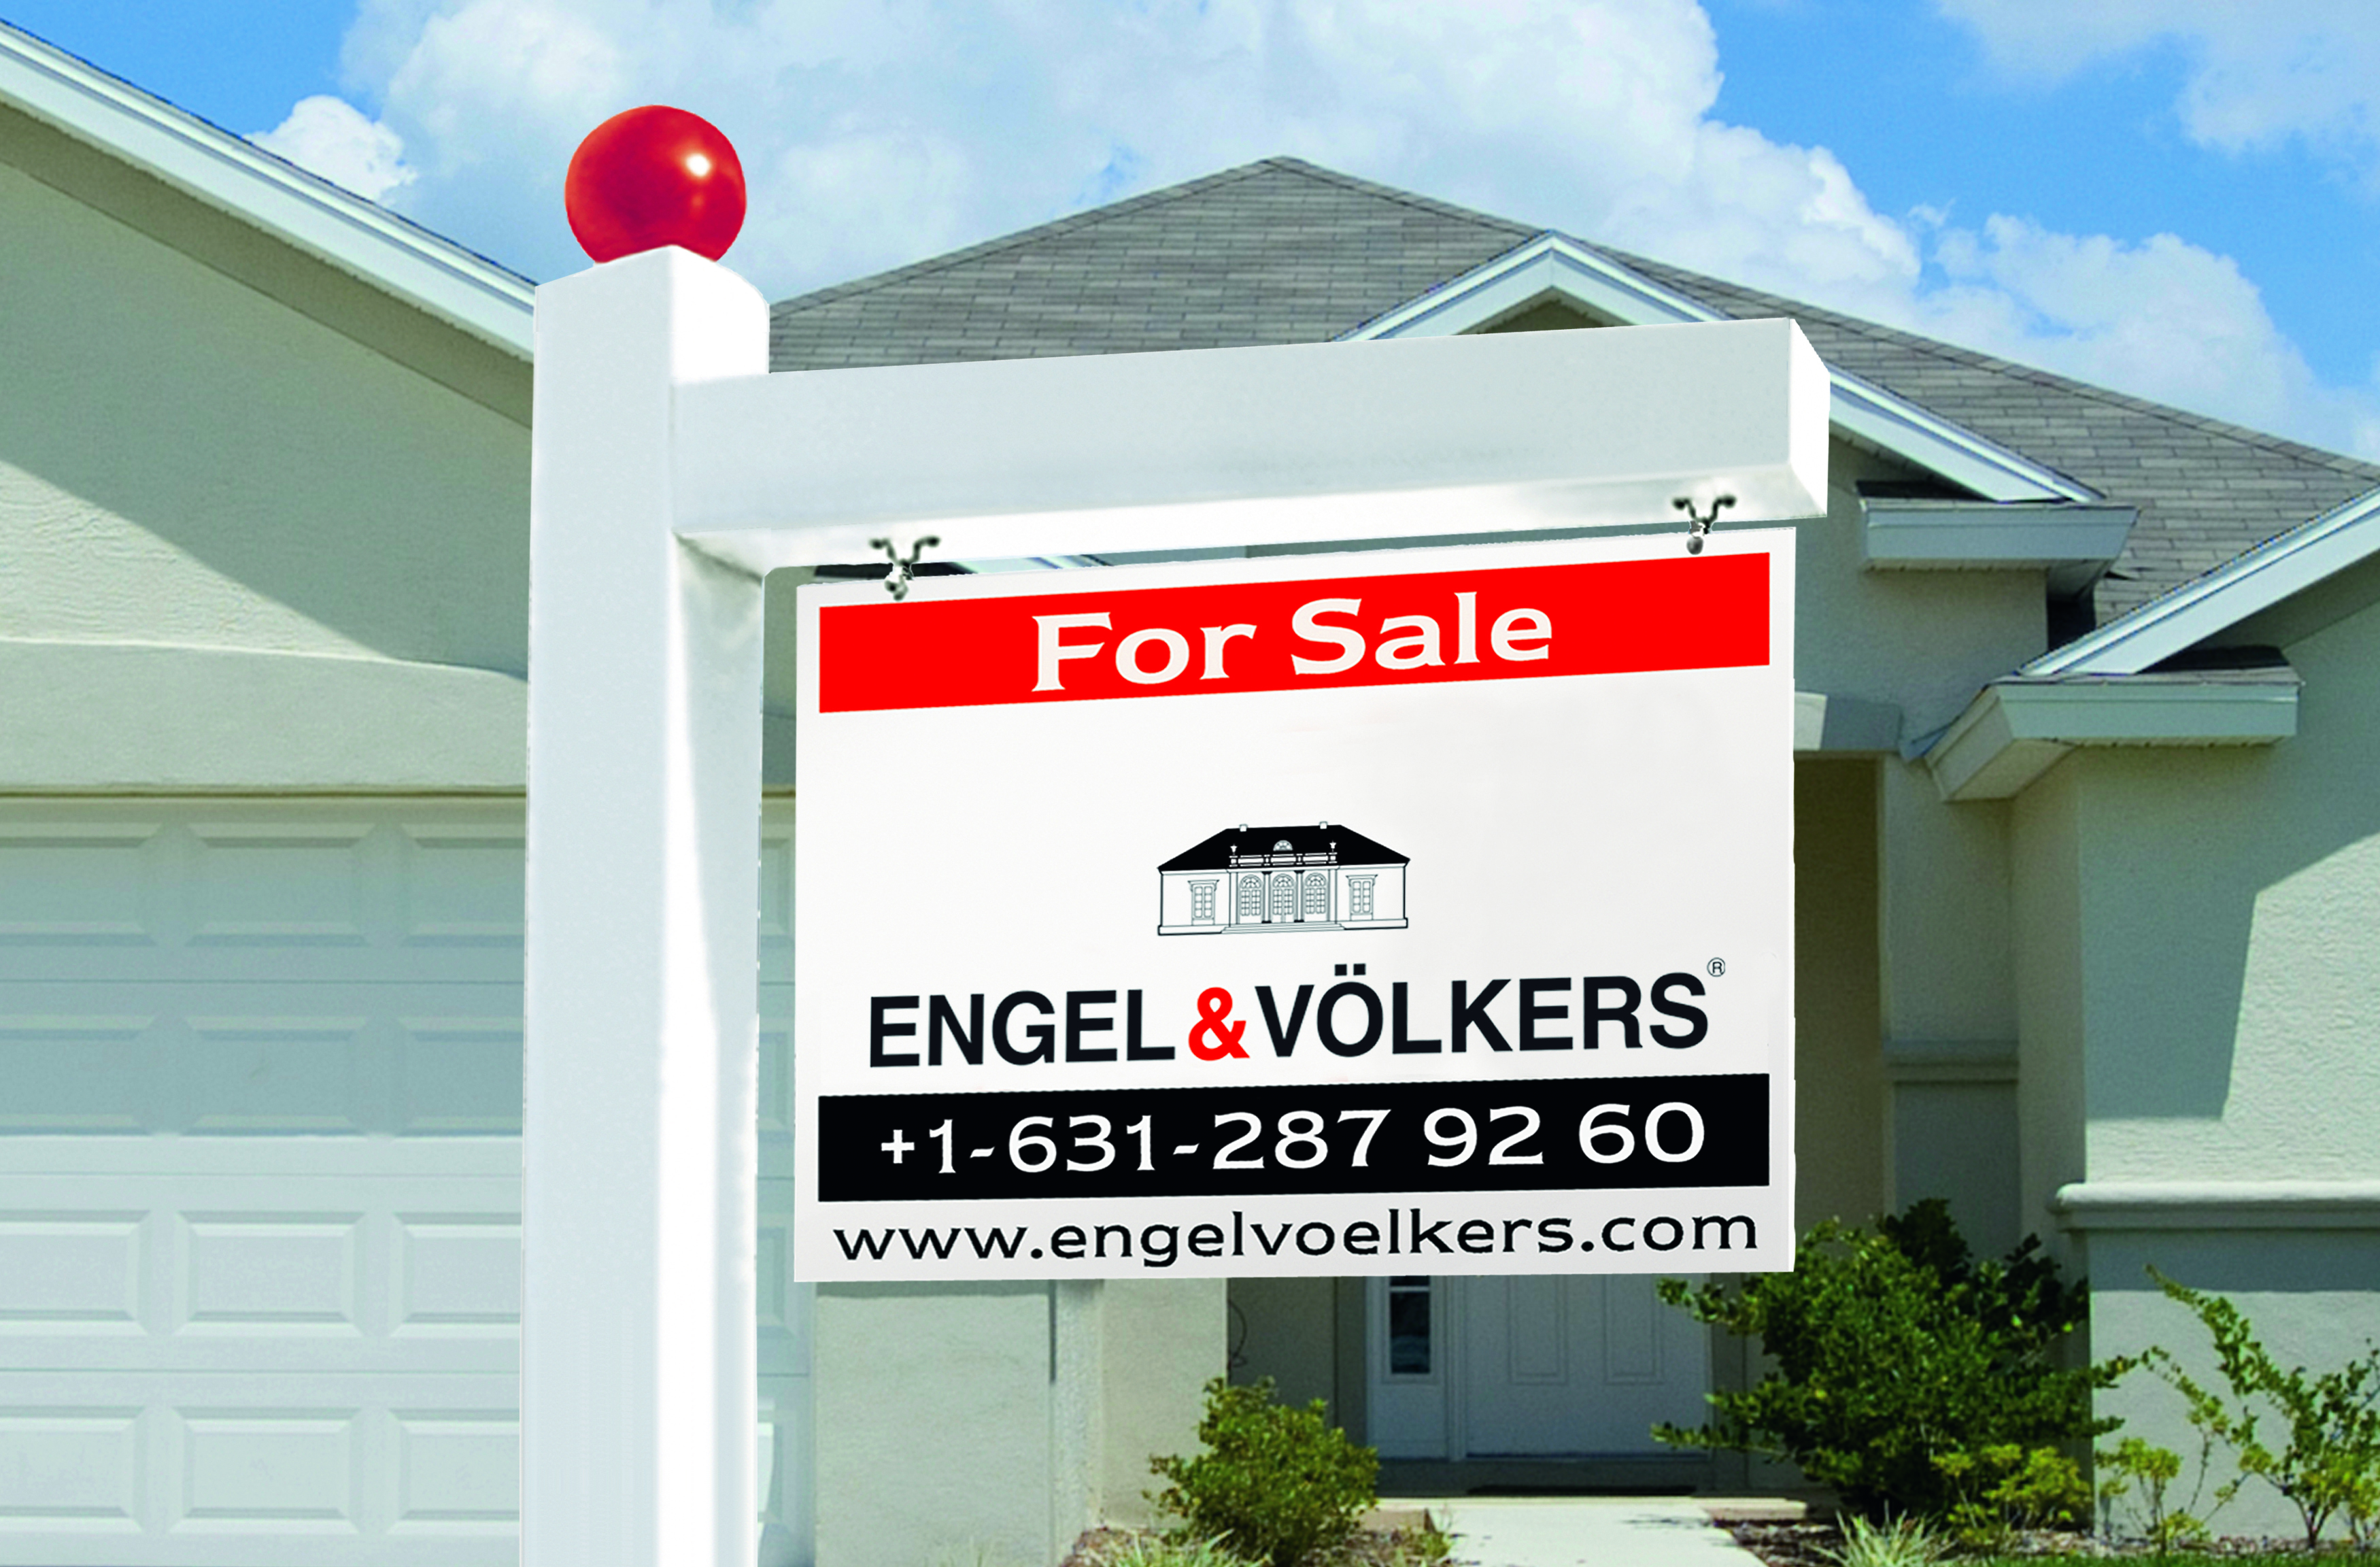 Download press images from engel v lkers - Engel and volkers ...